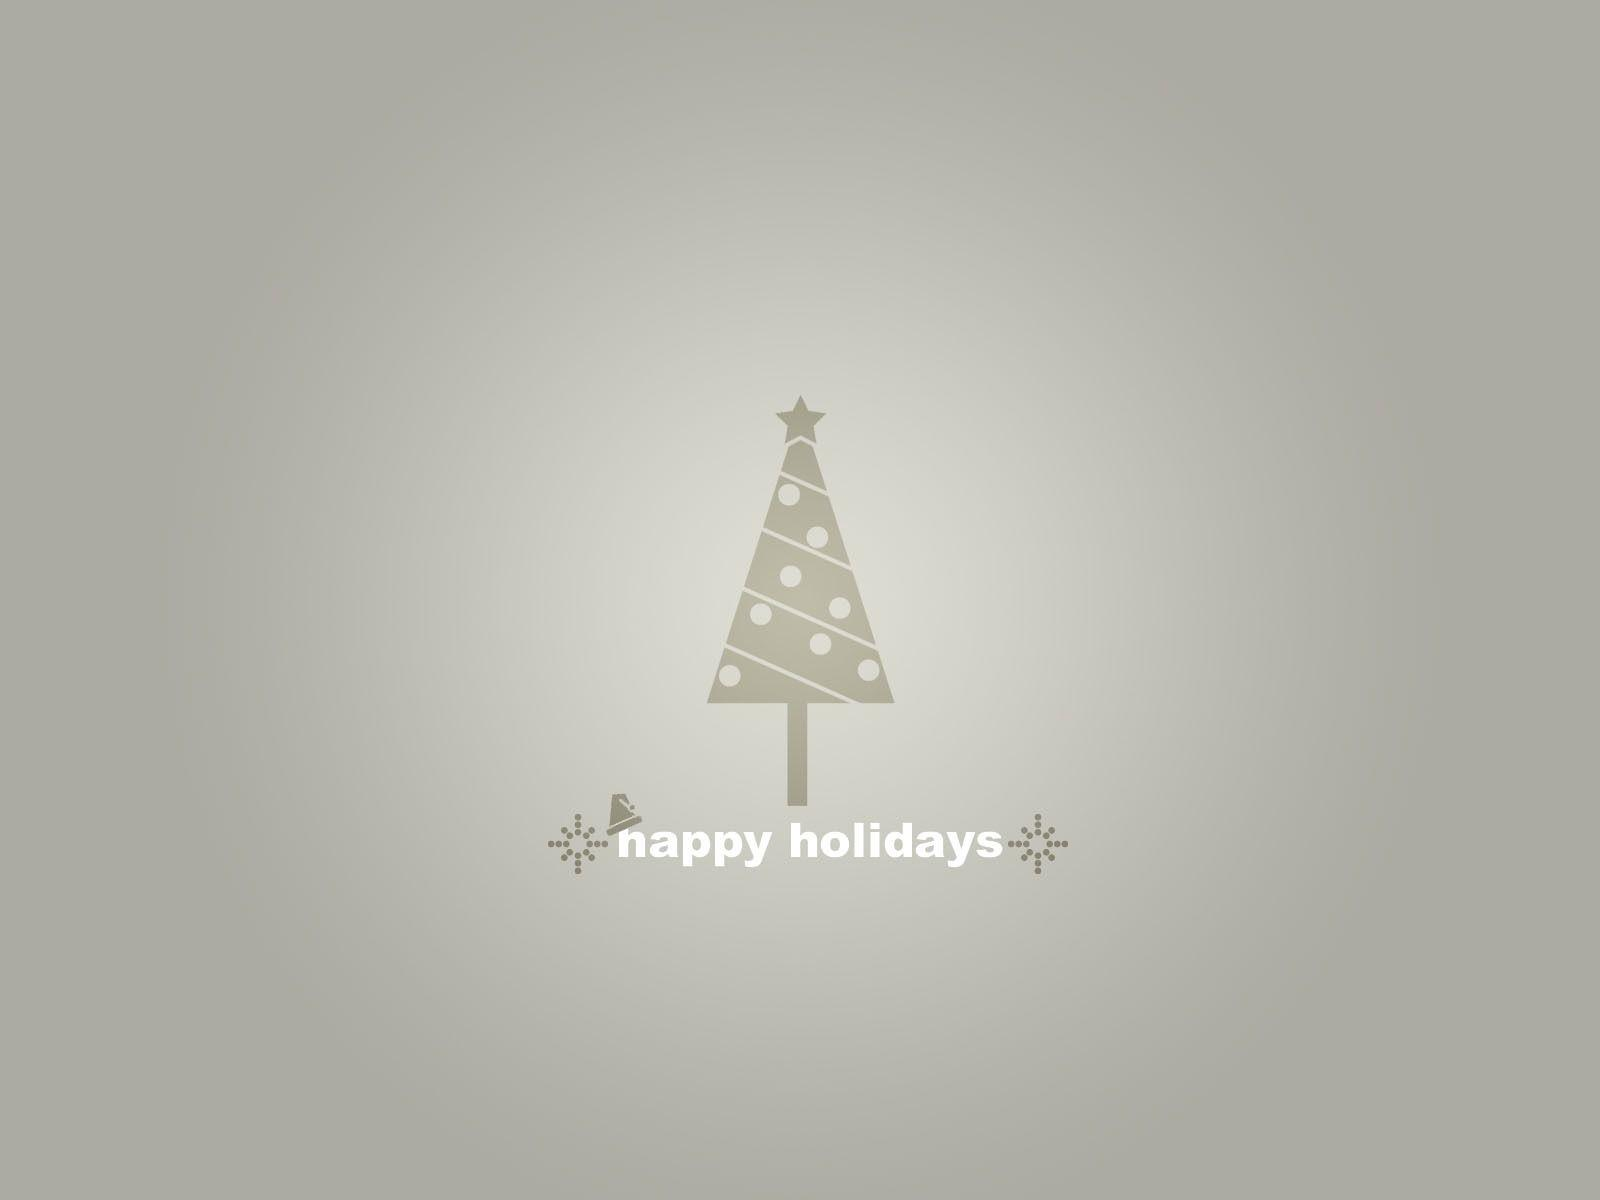 Grey Christmas Wallpaper Christmas Holidays Wallpapers in jpg format ...